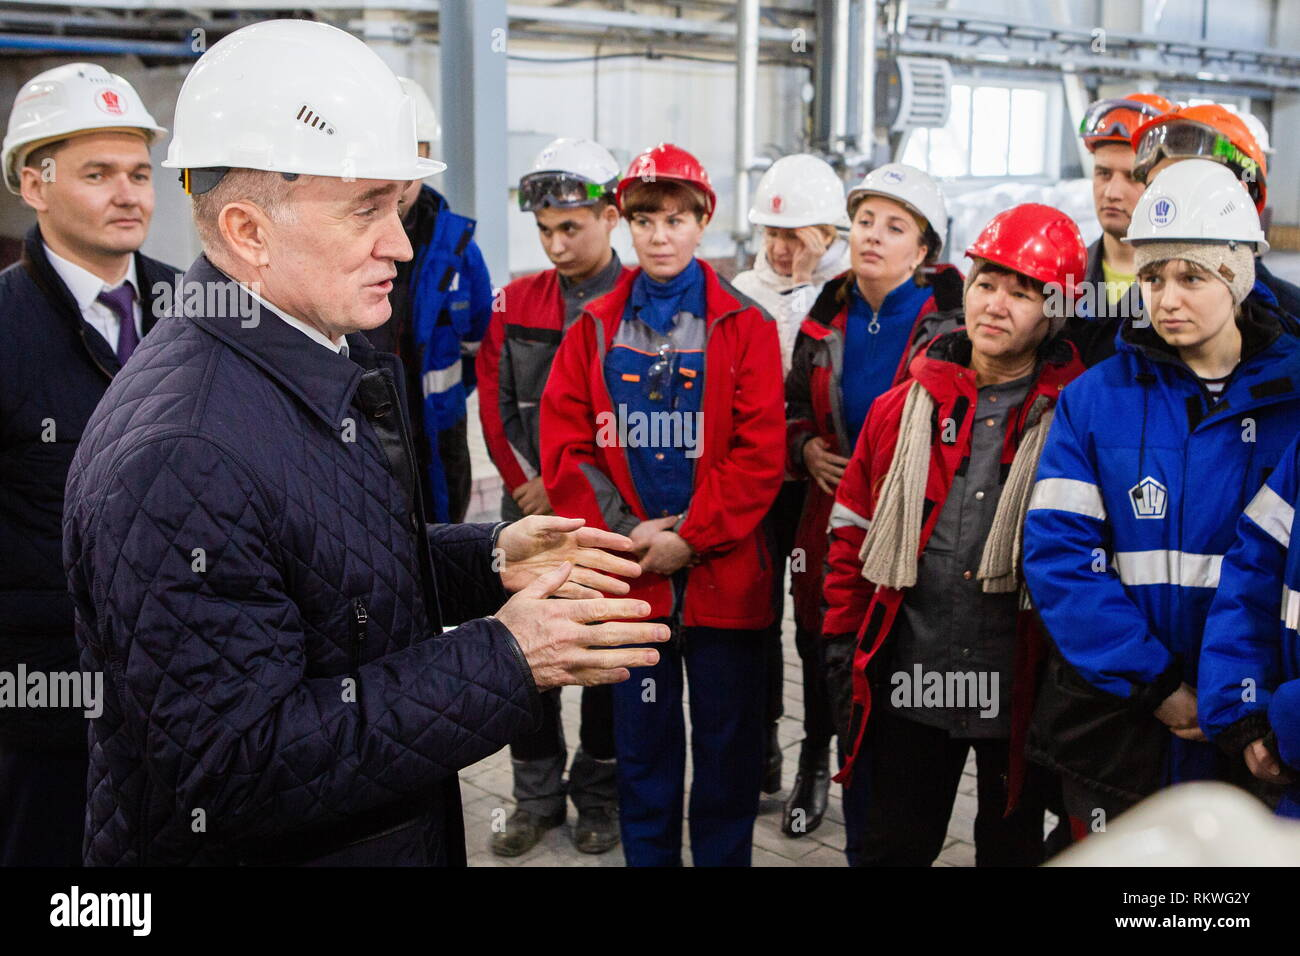 Chelyabinsk, Russia. 12th Feb, 2019. CHELYABINSK, RUSSIA - FEBRUARY 12, 2019: Pavel Izbrekht, general director, chairman of the Management Board at Chelyabinsk Zinc Plant, and Chelyabinsk Region Governor Boris Dubrovsky (L-R) talk to Chelyabinsk Zinc Plant workers. Nail Fattakhov/TASS Credit: ITAR-TASS News Agency/Alamy Live News - Stock Image